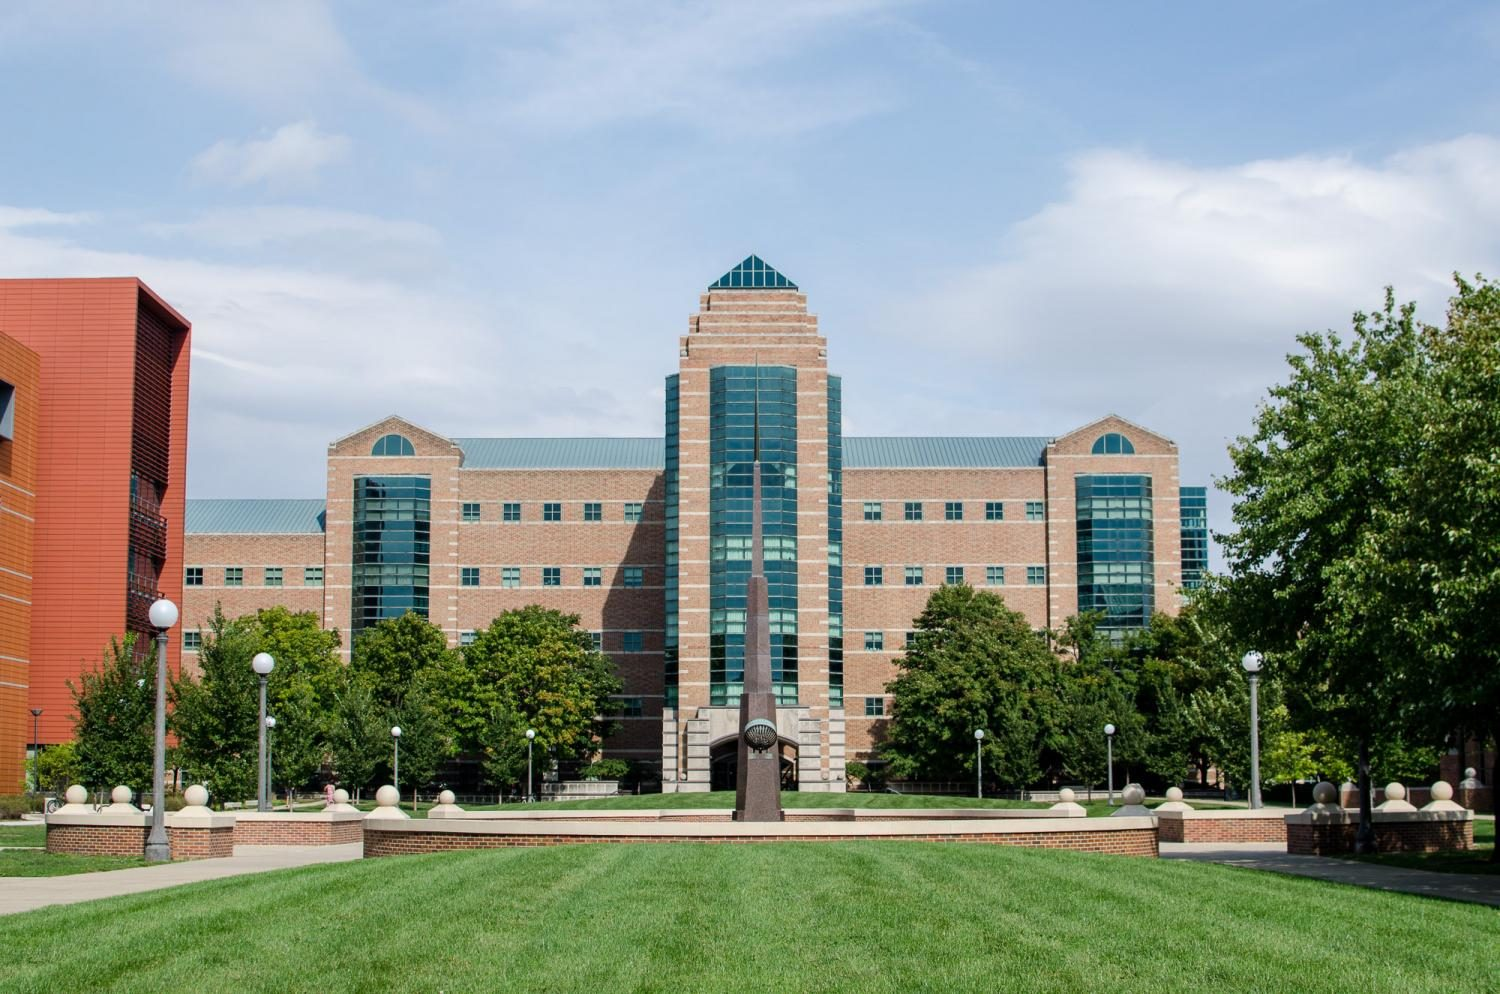 The Beckman Institute is located at 405 N Mathews Ave. in  Urbana. The mayors of Champaign and Urbana, along with the village president of Savoy will announce Oct. 2 as Beckman Institute day to celebrate it's 30th anniversary.